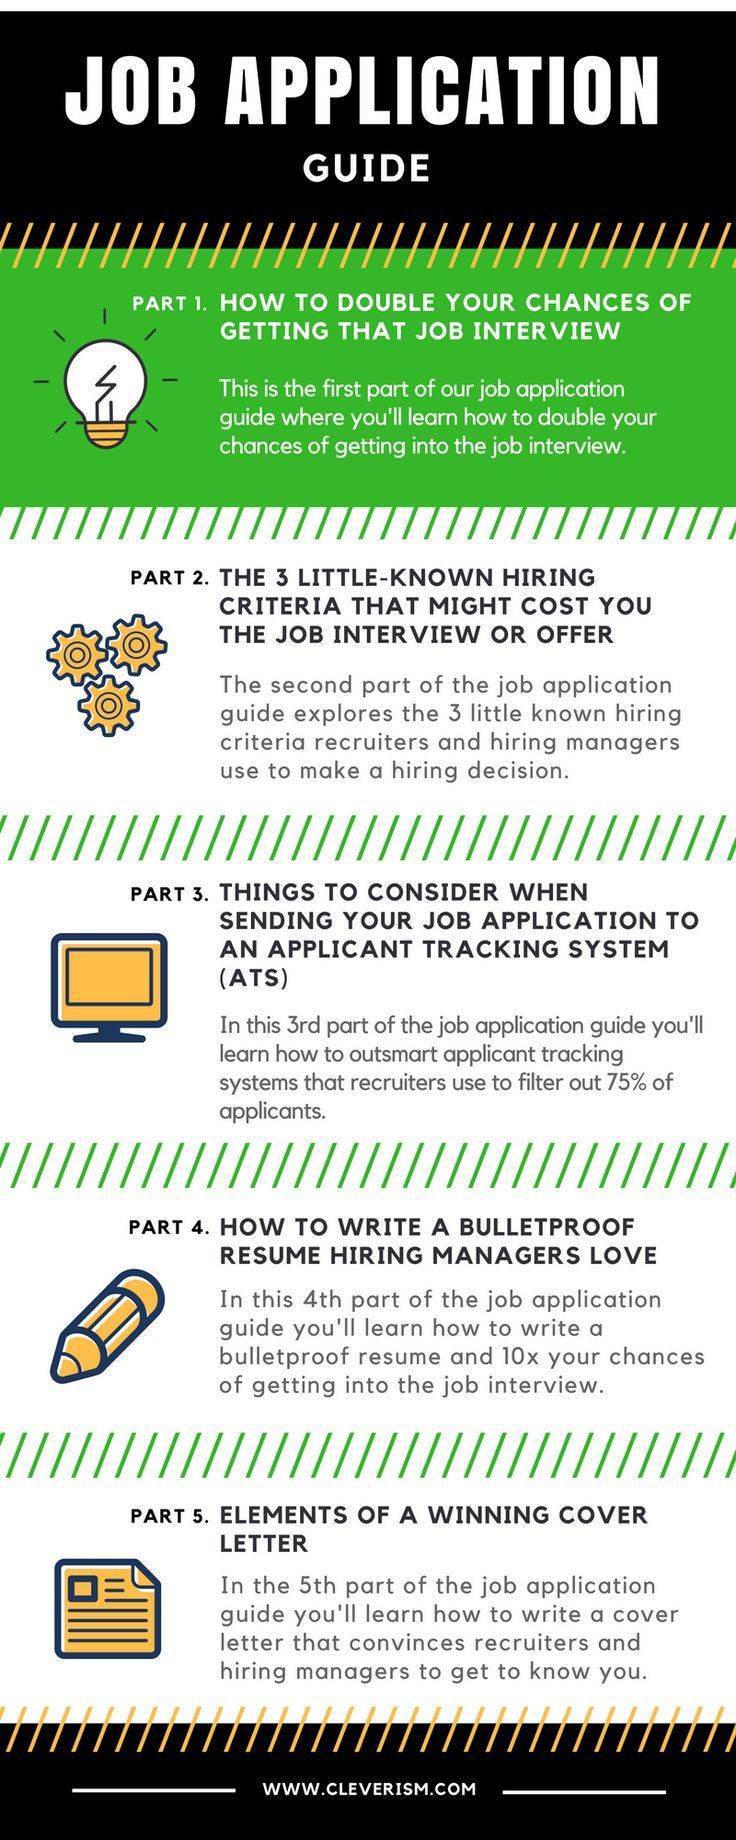 How To Double Your Chances Of Getting That Job Interview Job